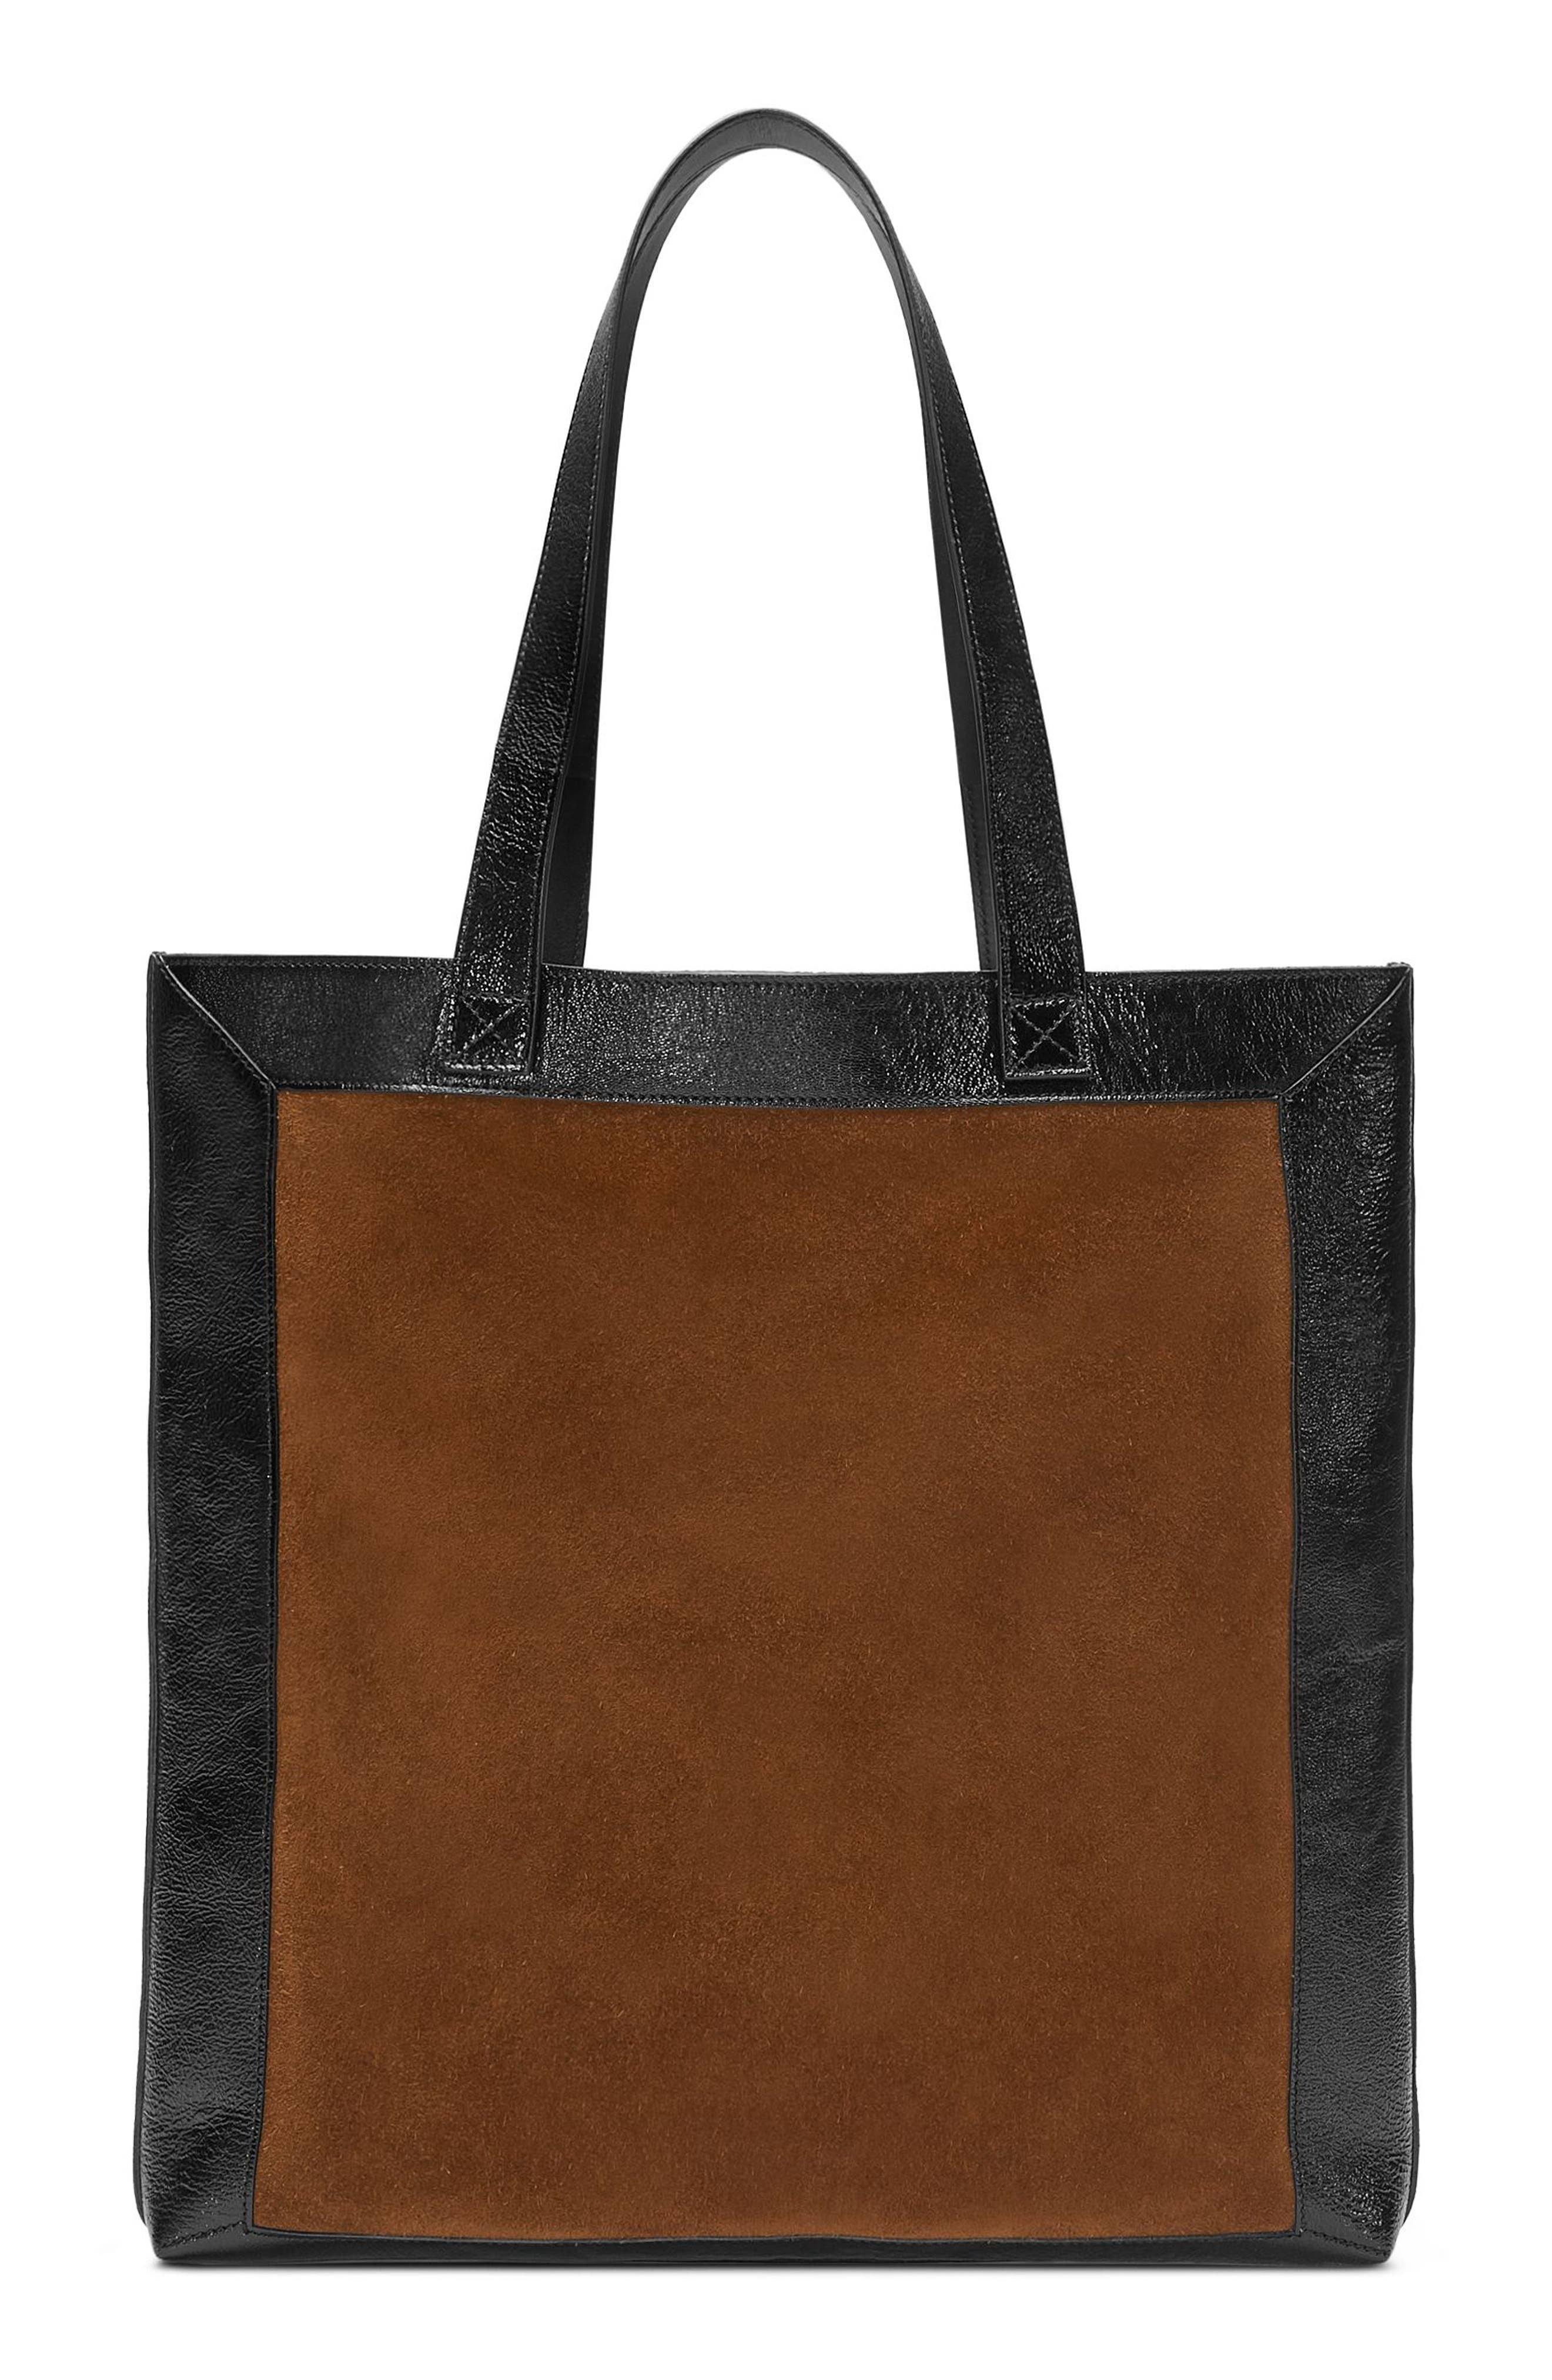 Large GG Calfskin Suede Tote with Zip Pouch,                             Alternate thumbnail 2, color,                             Brown/ Black